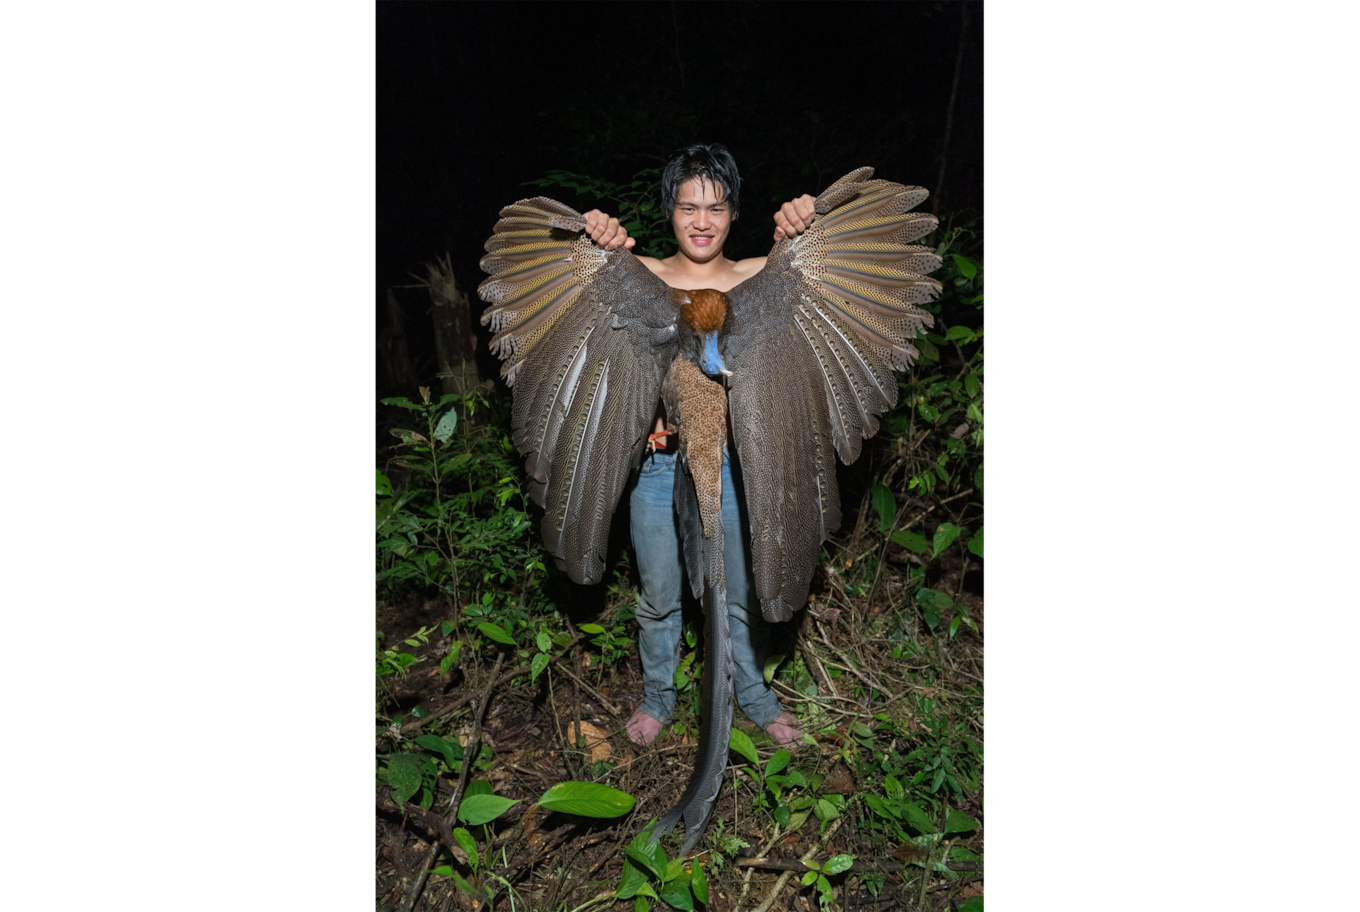 Tomas Wuethrich sony alpha 9 man holding a large bird at arms length with its wings spread